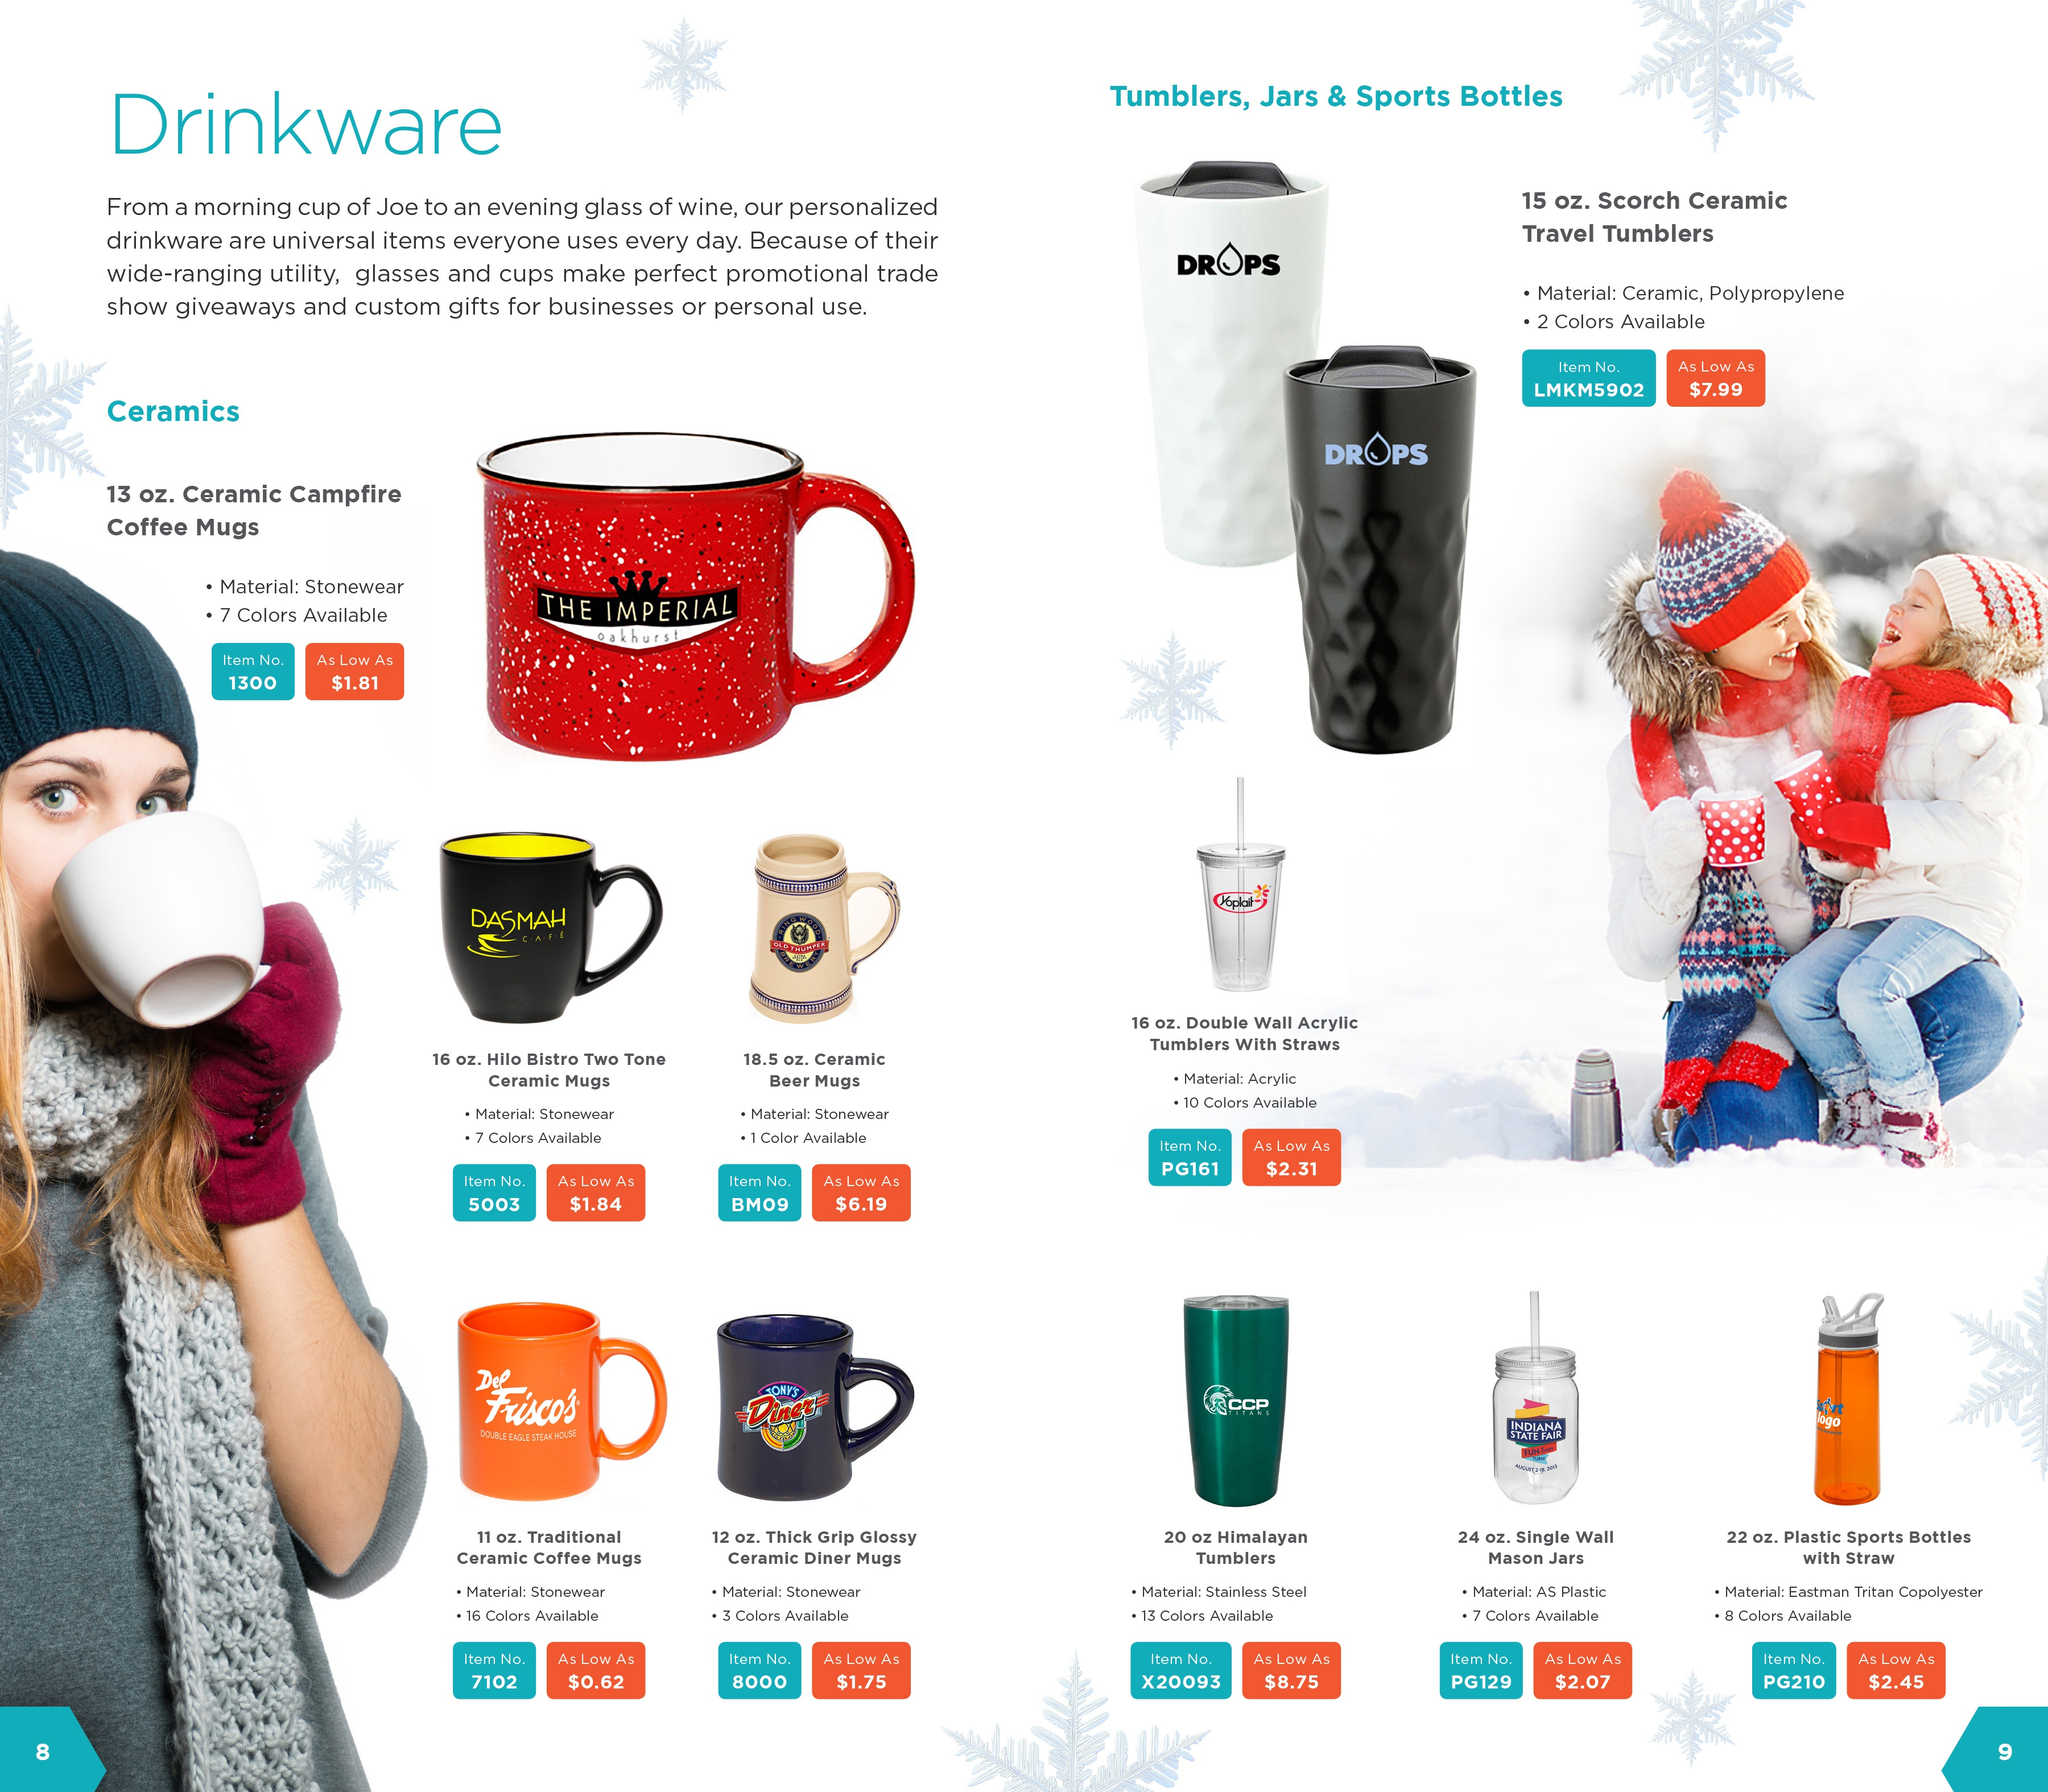 2018 DiscountMugs Winter Catalog_5.jpg